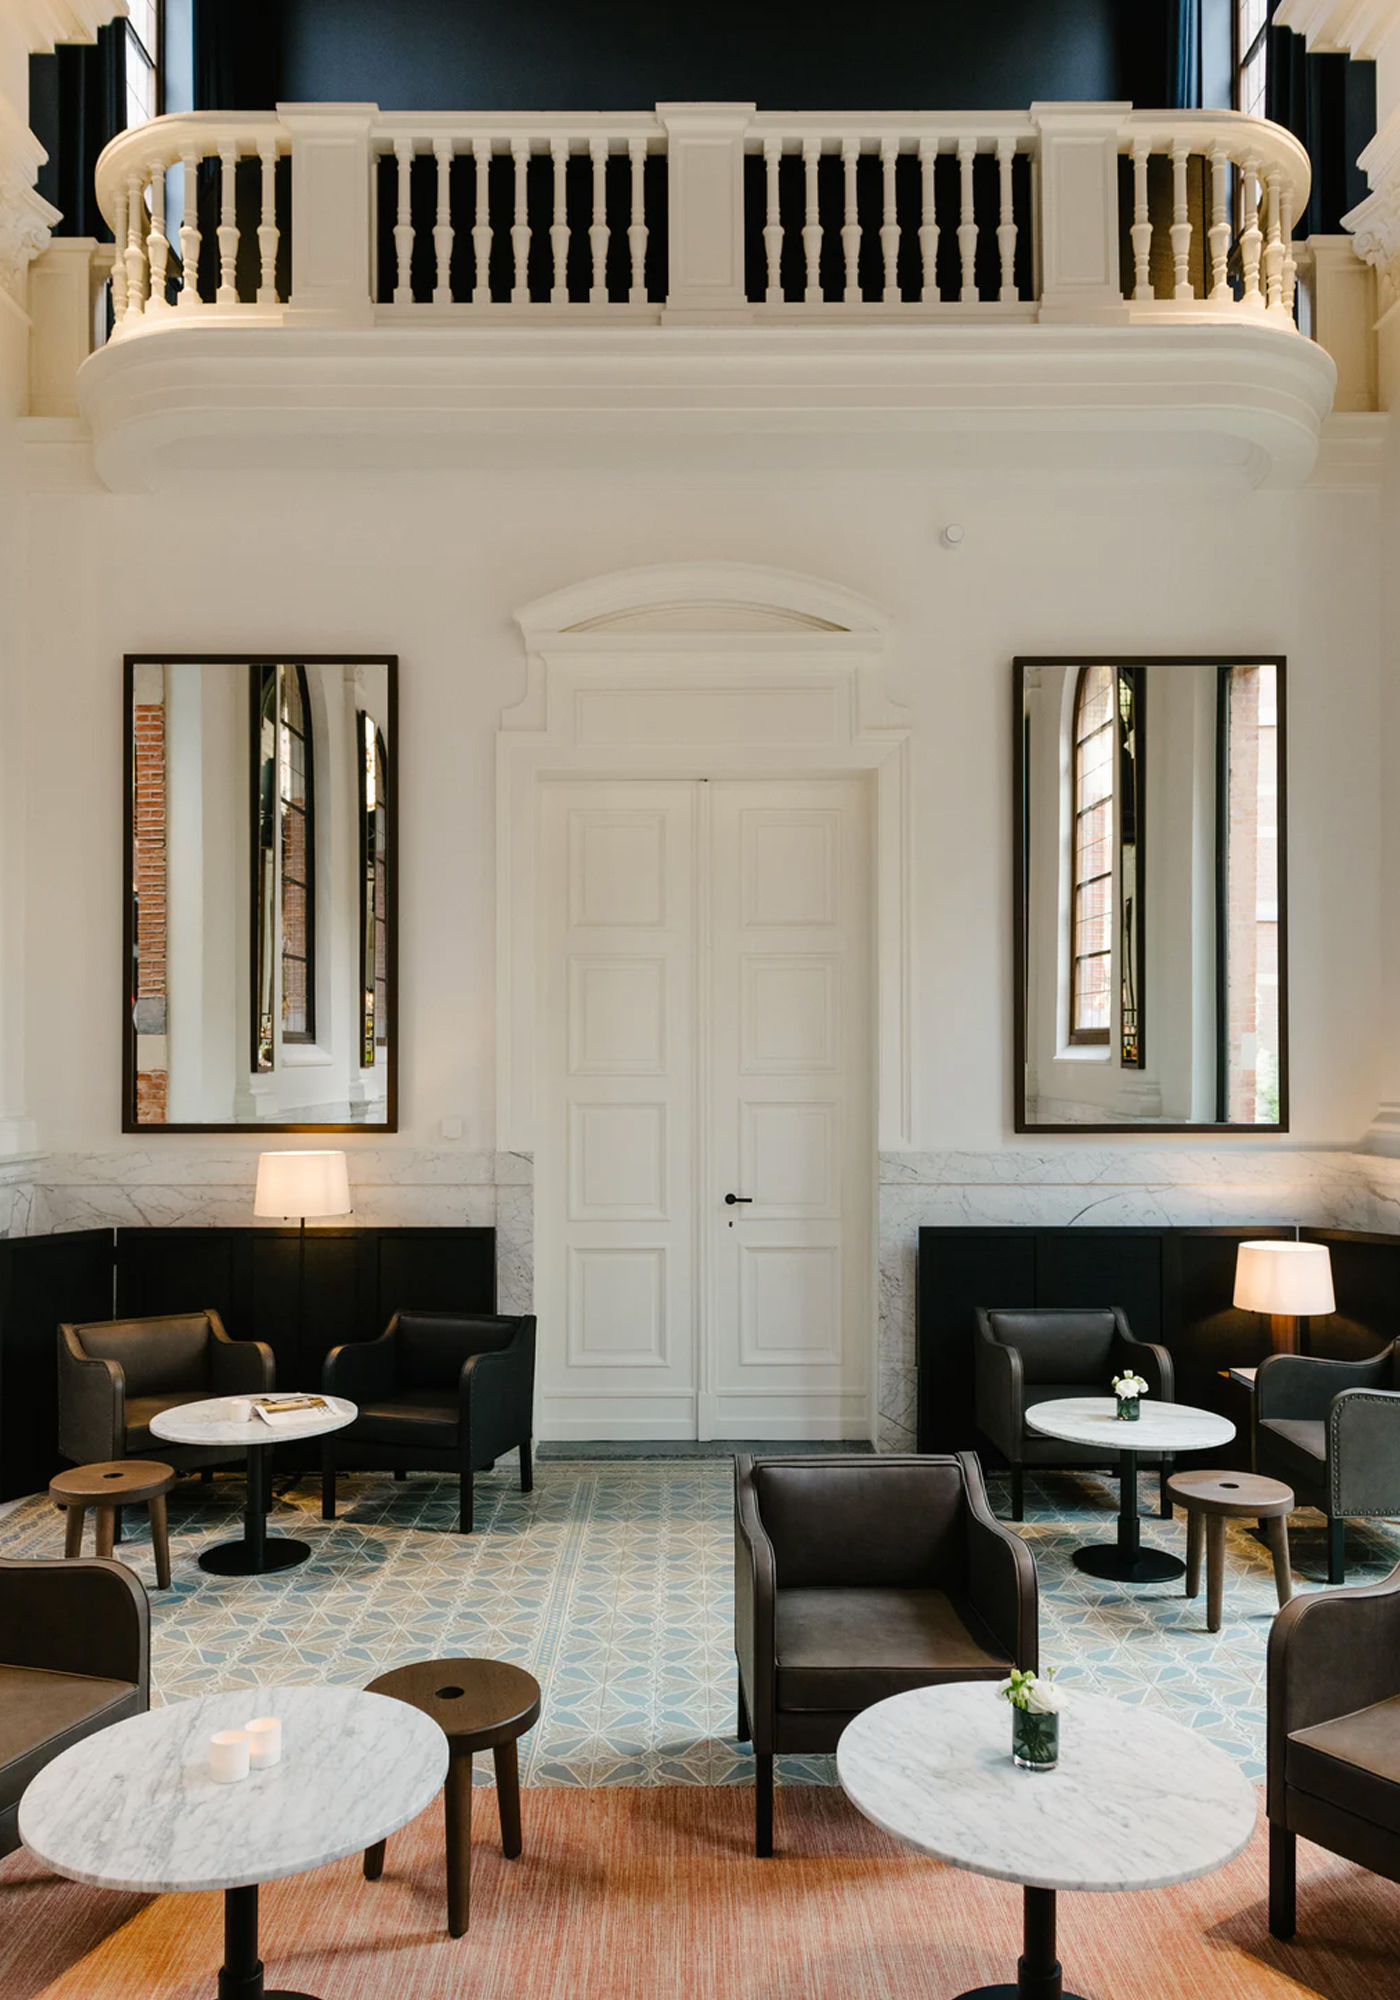 City Guide Anvers Antwerp August Hotel Restaurant The Jane Chef Nick Bril